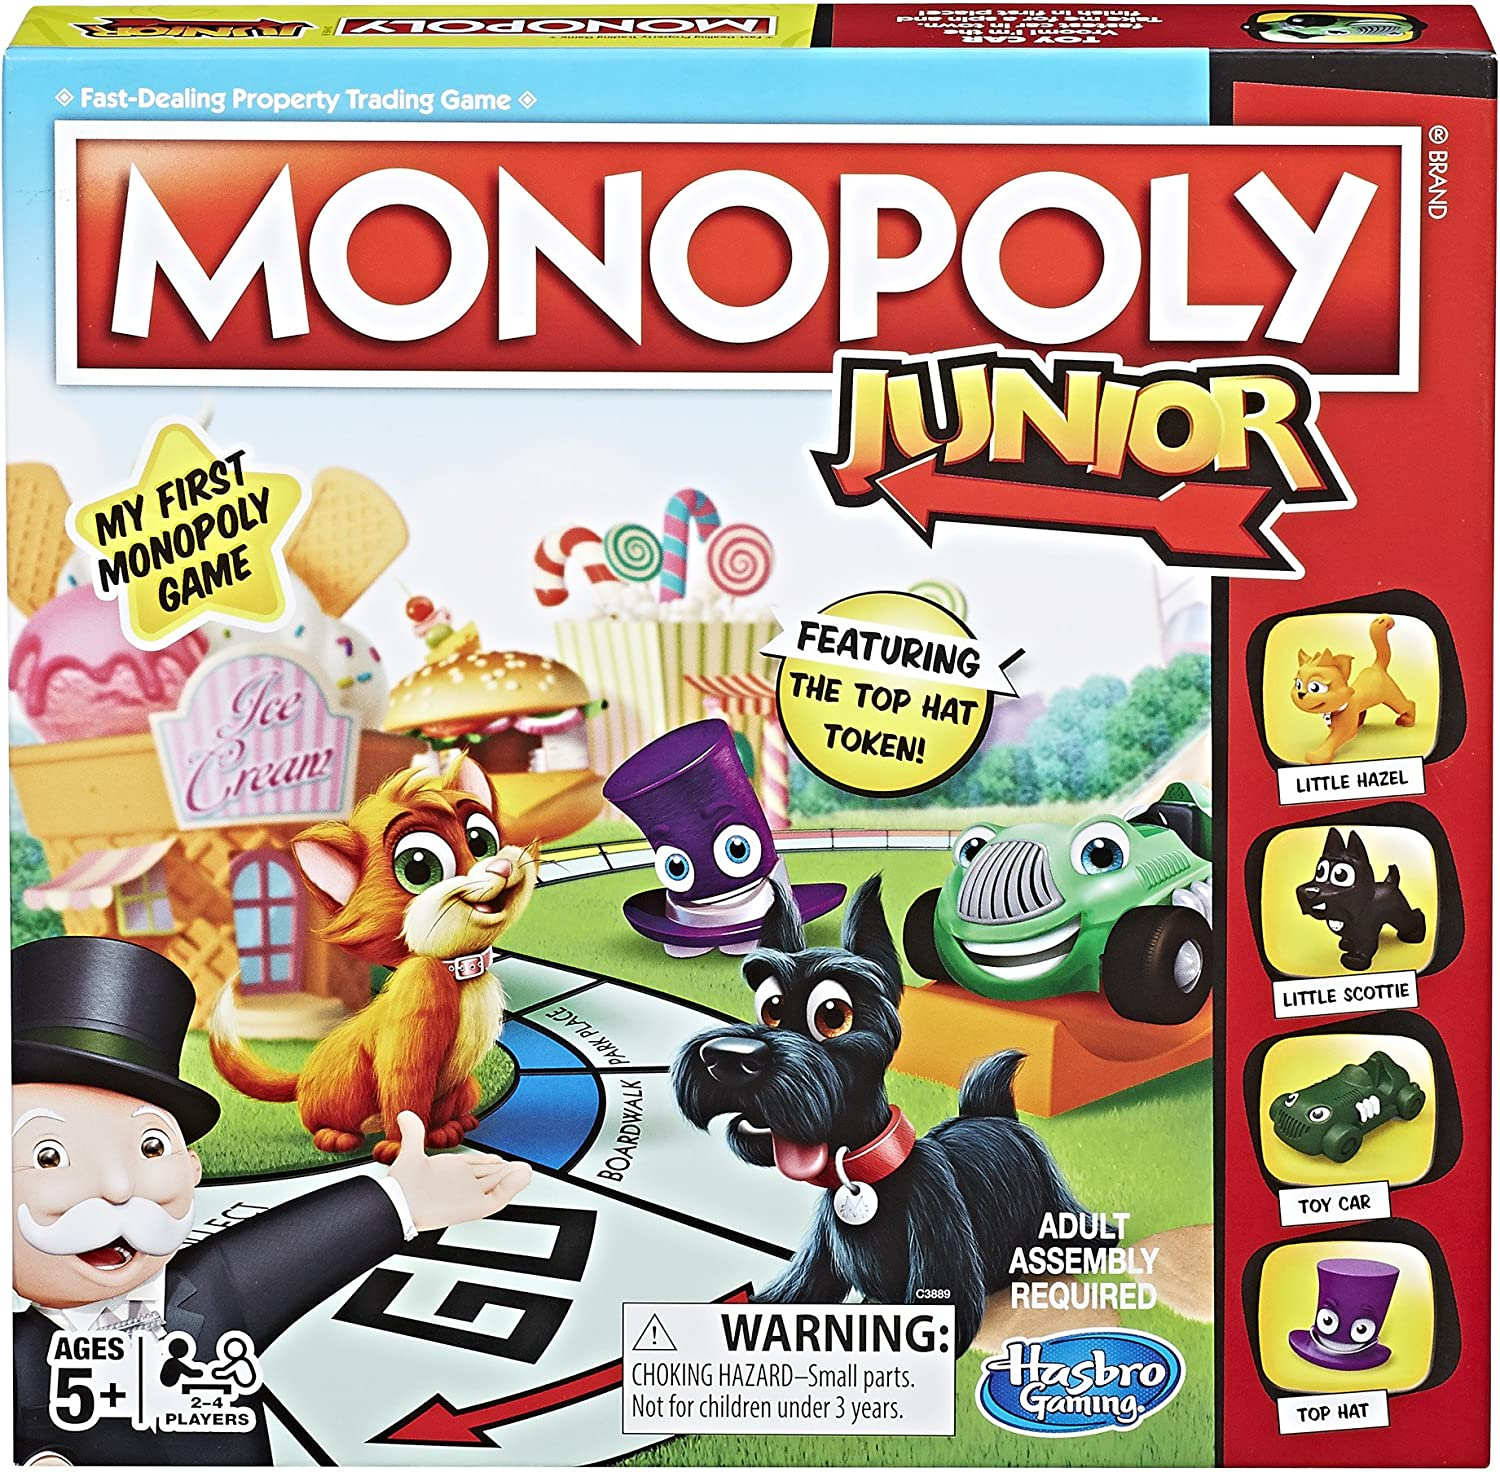 Monopoly Junior board game for reading fluency